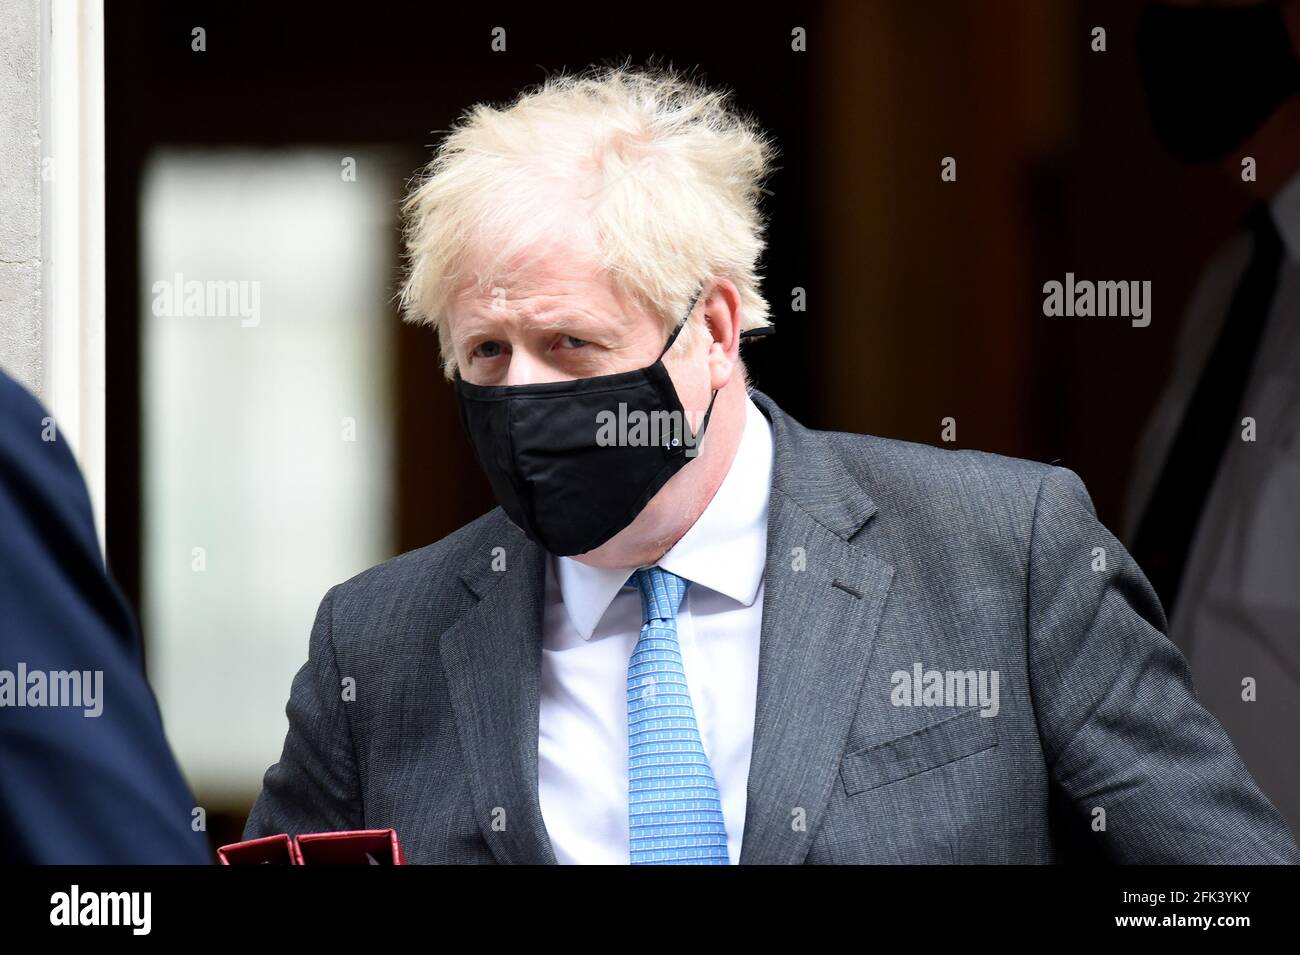 UK. 28th Apr, 2021. Downing Street London 28th April 2021.Prime Minister Boris Johnson leaves No10 heading to Westminster for his weekly Prime Ministers questions Credit: MARTIN DALTON/Alamy Live News Stock Photo